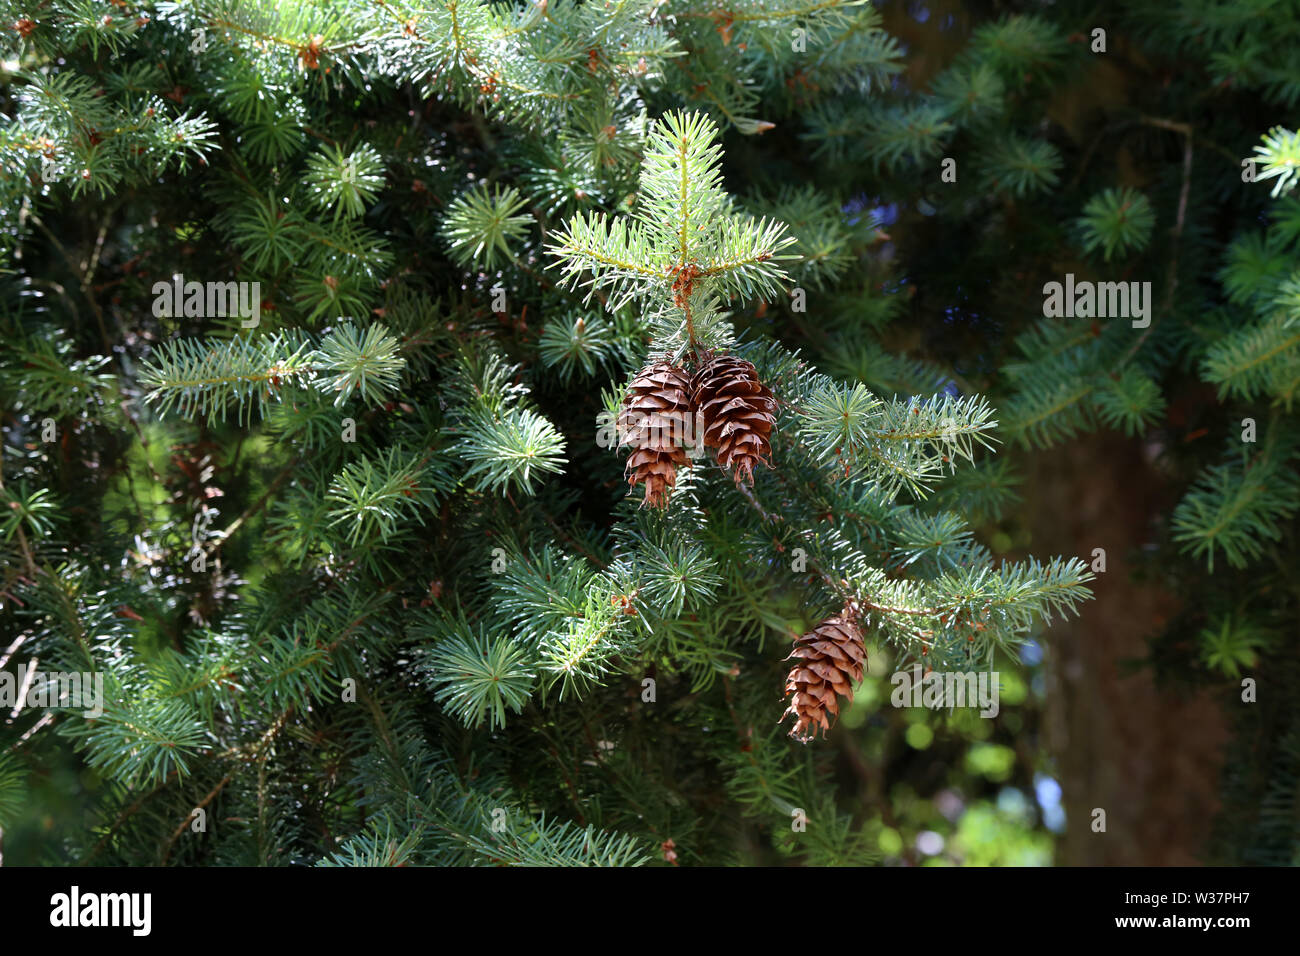 Green conifer with brown cones in the forest. - Stock Image